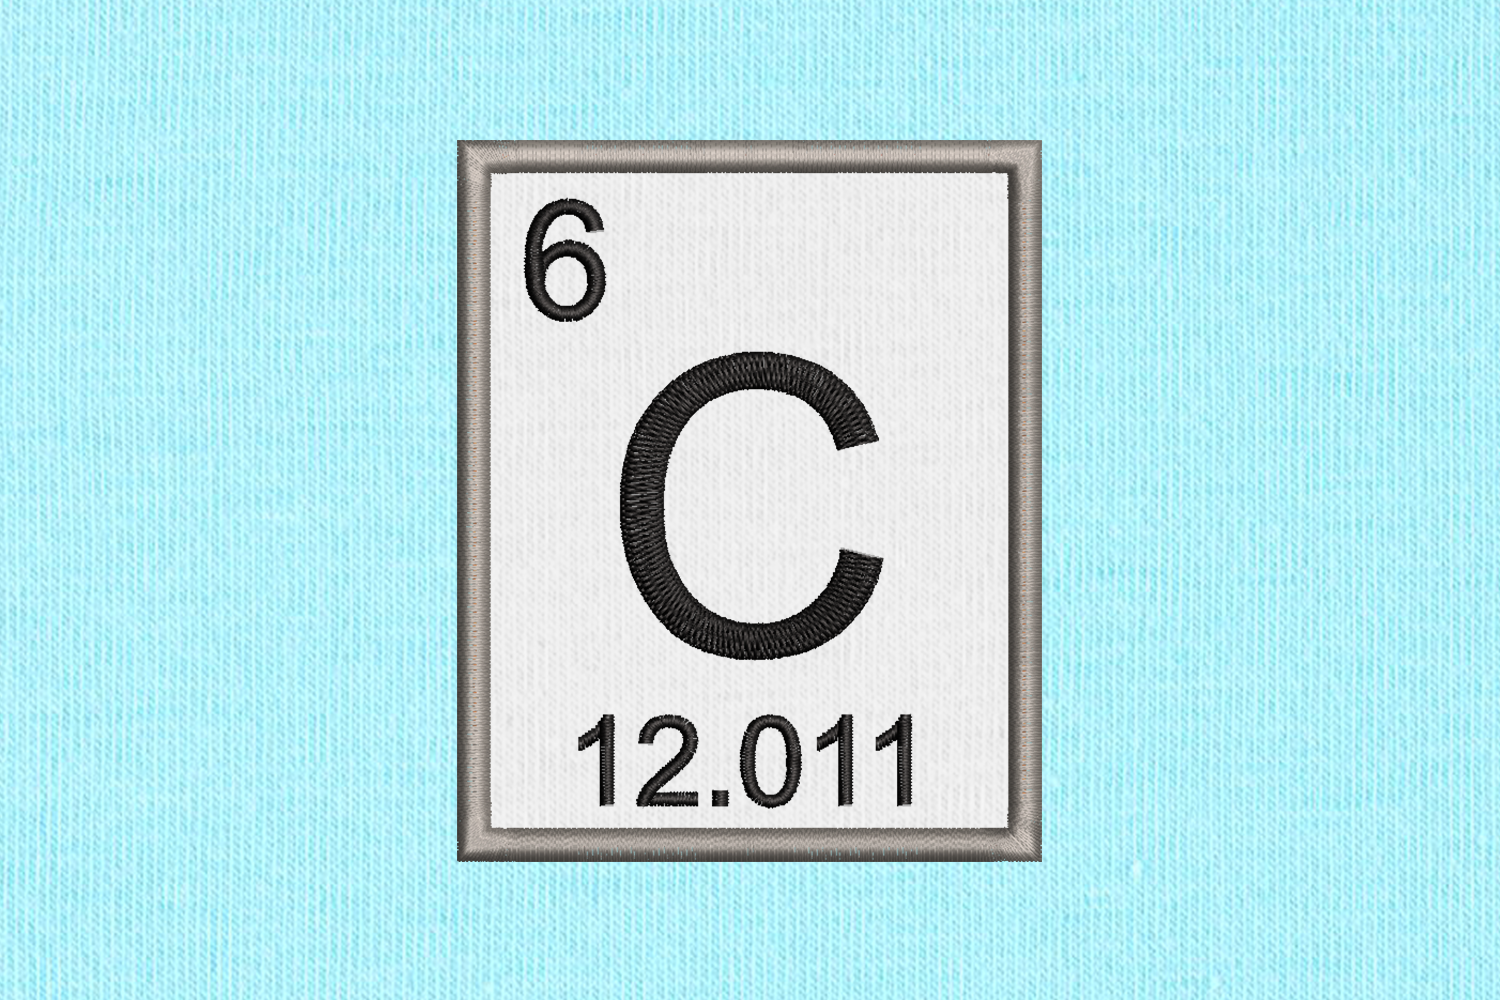 Periodic Table Element 6 C Carbon Applique Embroidery example image 1